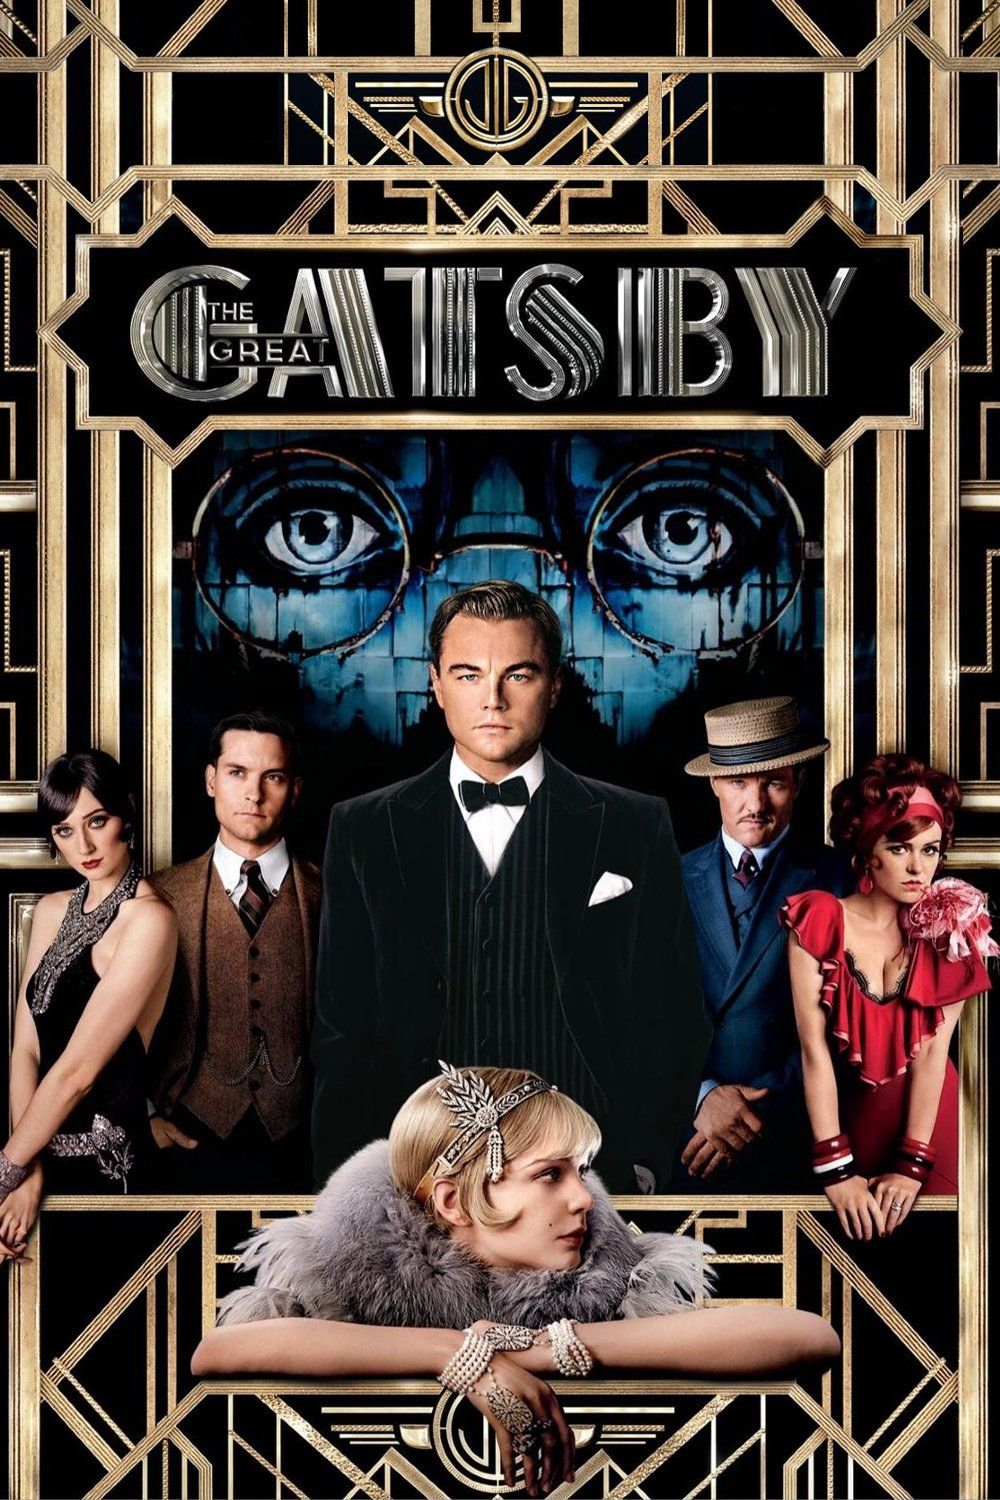 GATSBY. Baz Luhrmann is a genius. That really is all